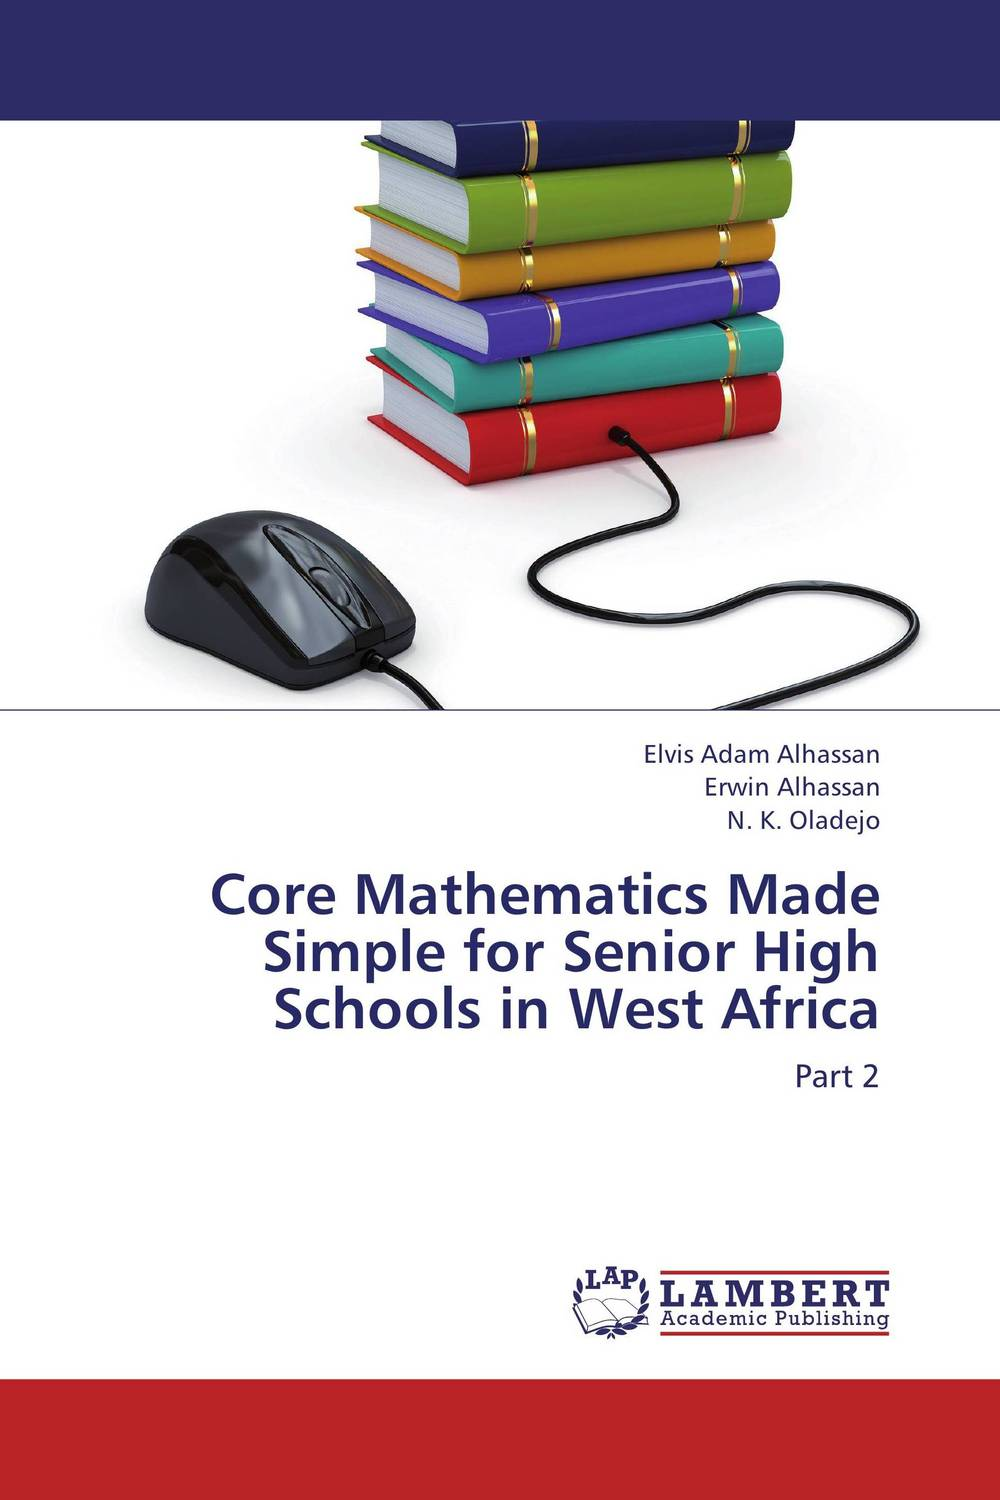 Core Mathematics Made Simple for Senior High Schools in West Africa longmans geographical series book 3 the world for senior students